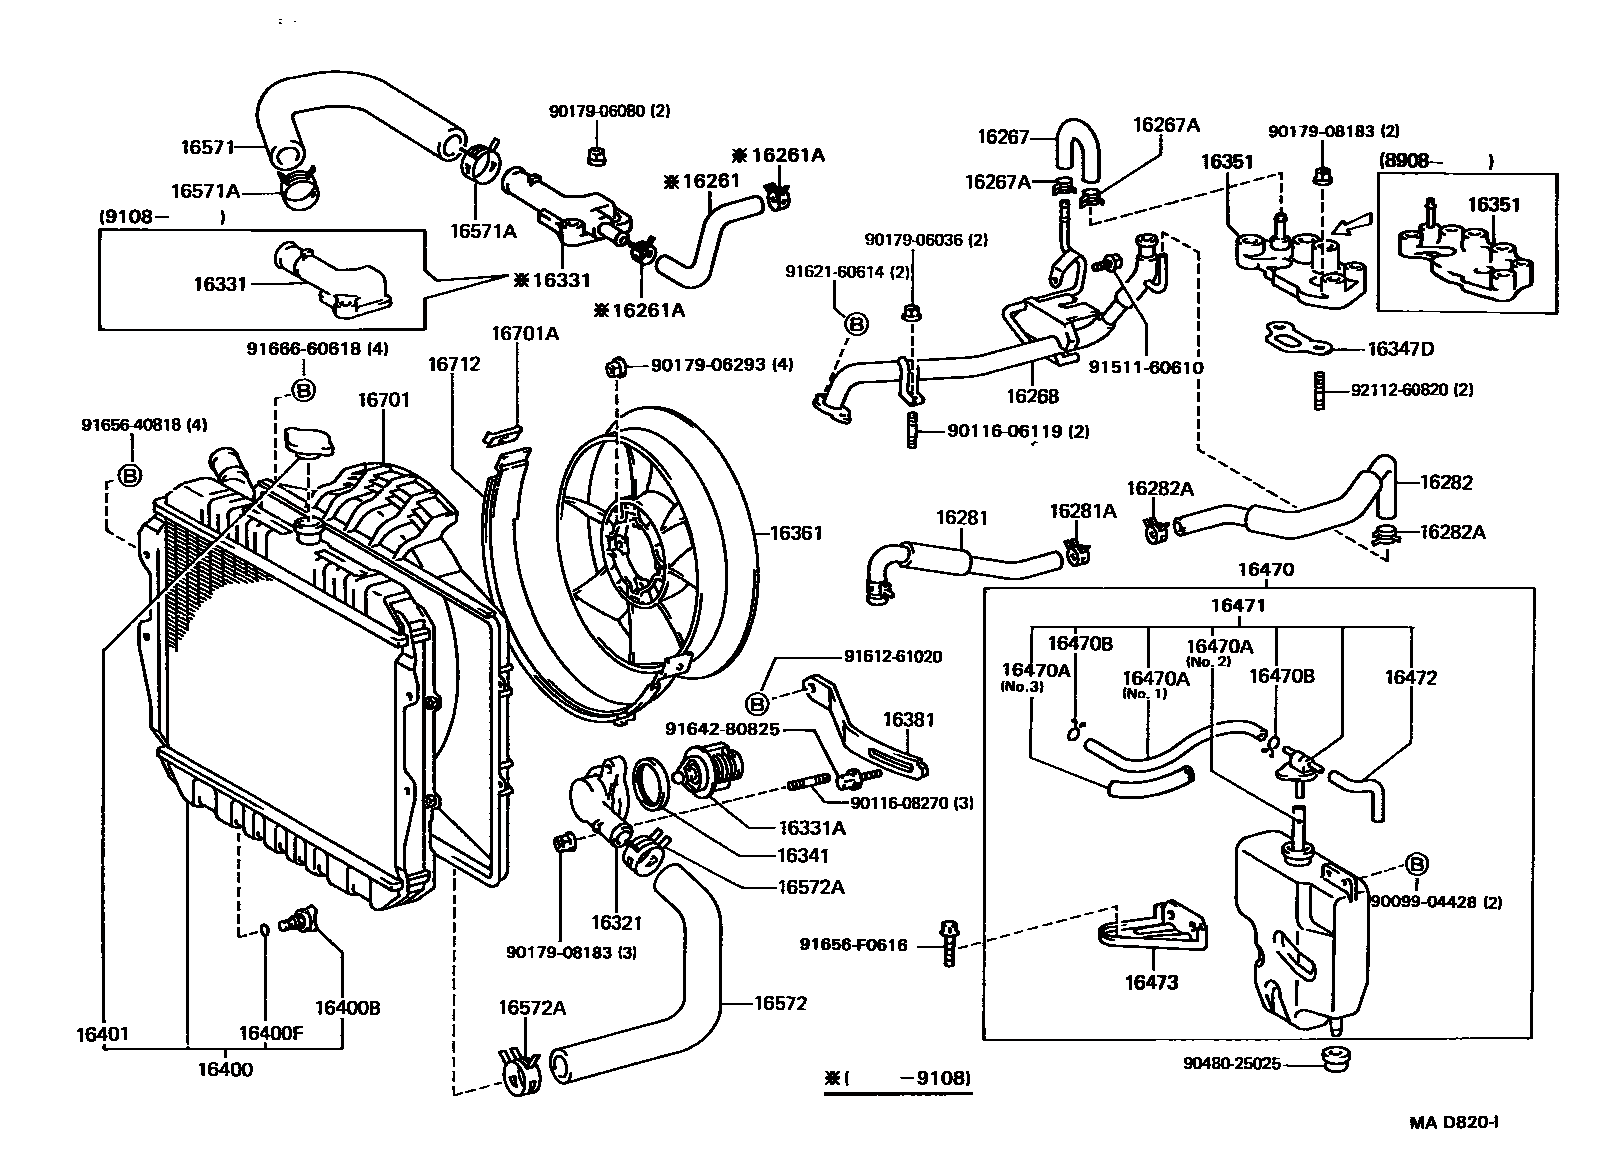 toyota 3vze engine diagram wiring diagram yer 1990 toyota 4runner engine diagram 3vze [ 1608 x 1152 Pixel ]